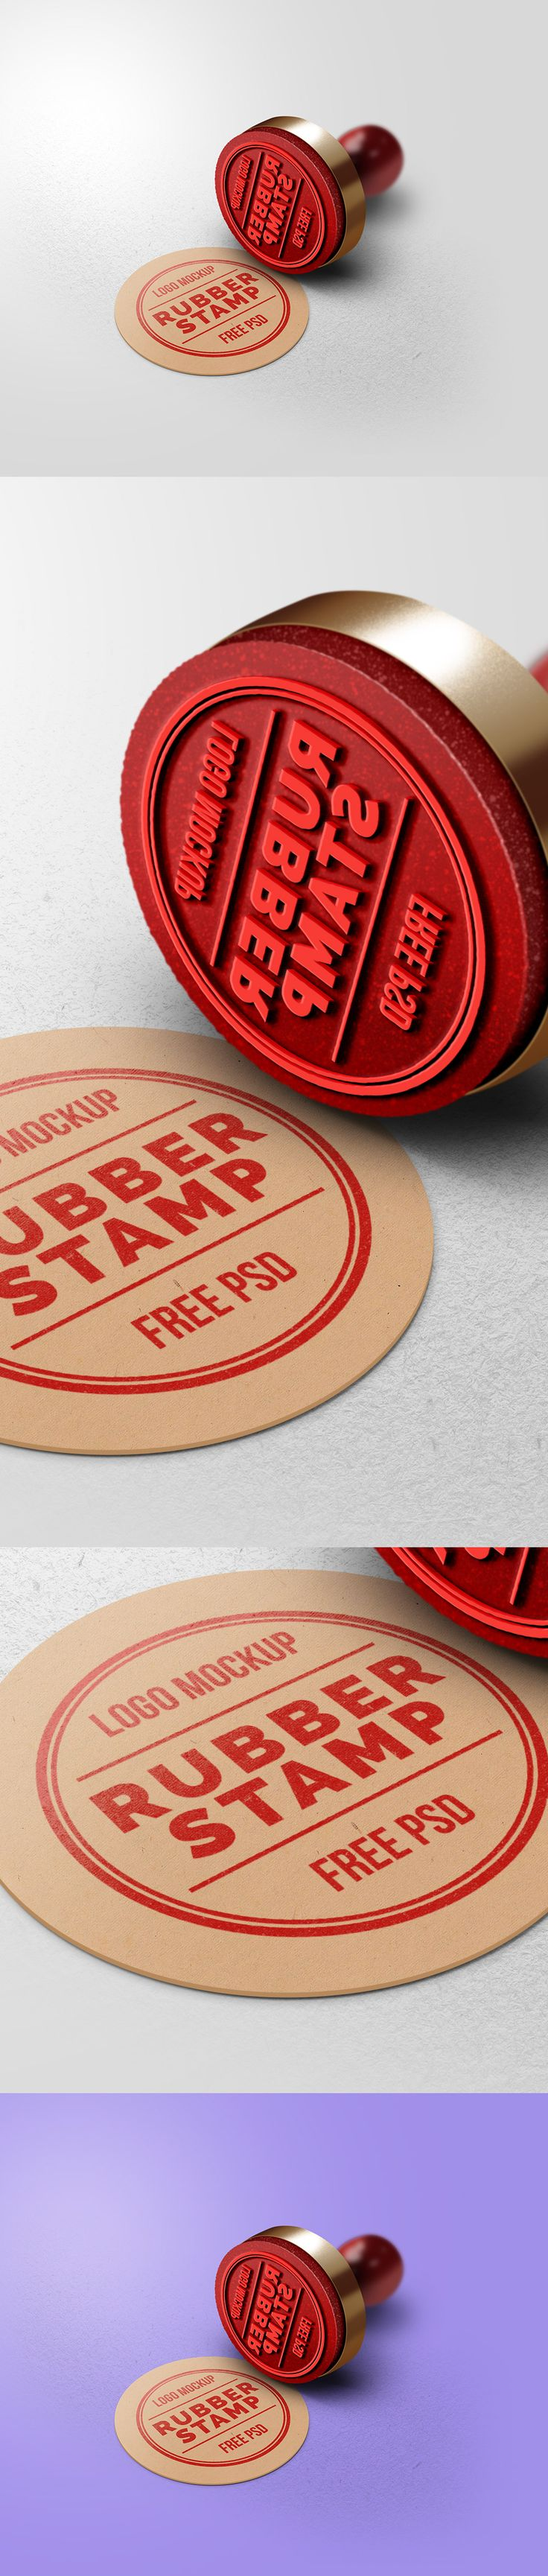 Free Rubber Stamp Logo Mockup (33.4 MB) | Graphics Fuel | #free #photoshop…